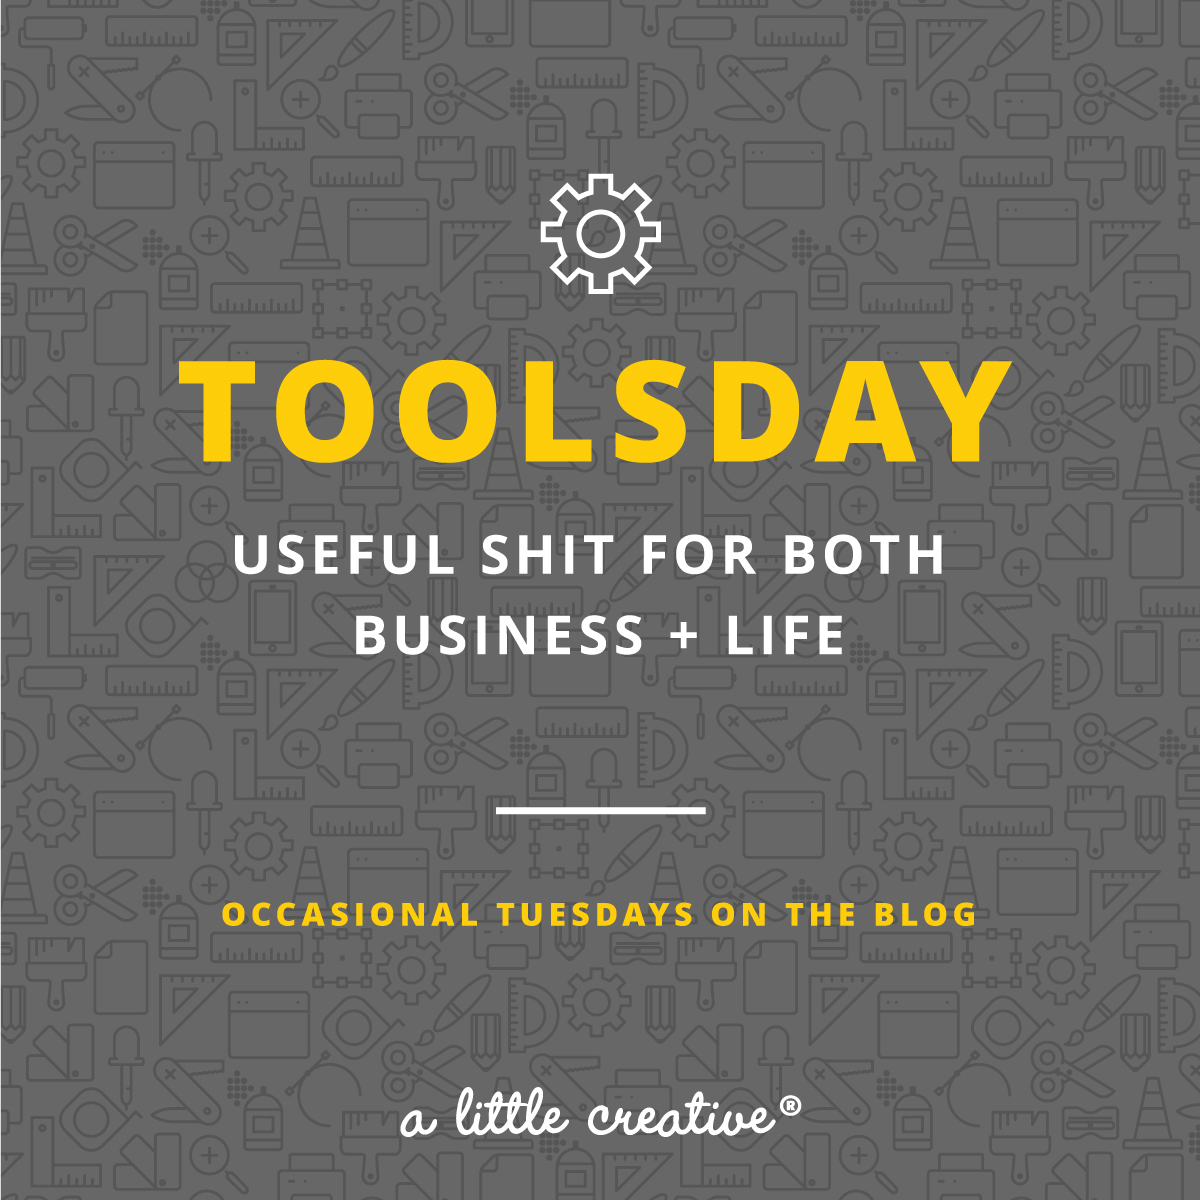 toolsday - useful tools for both business + life